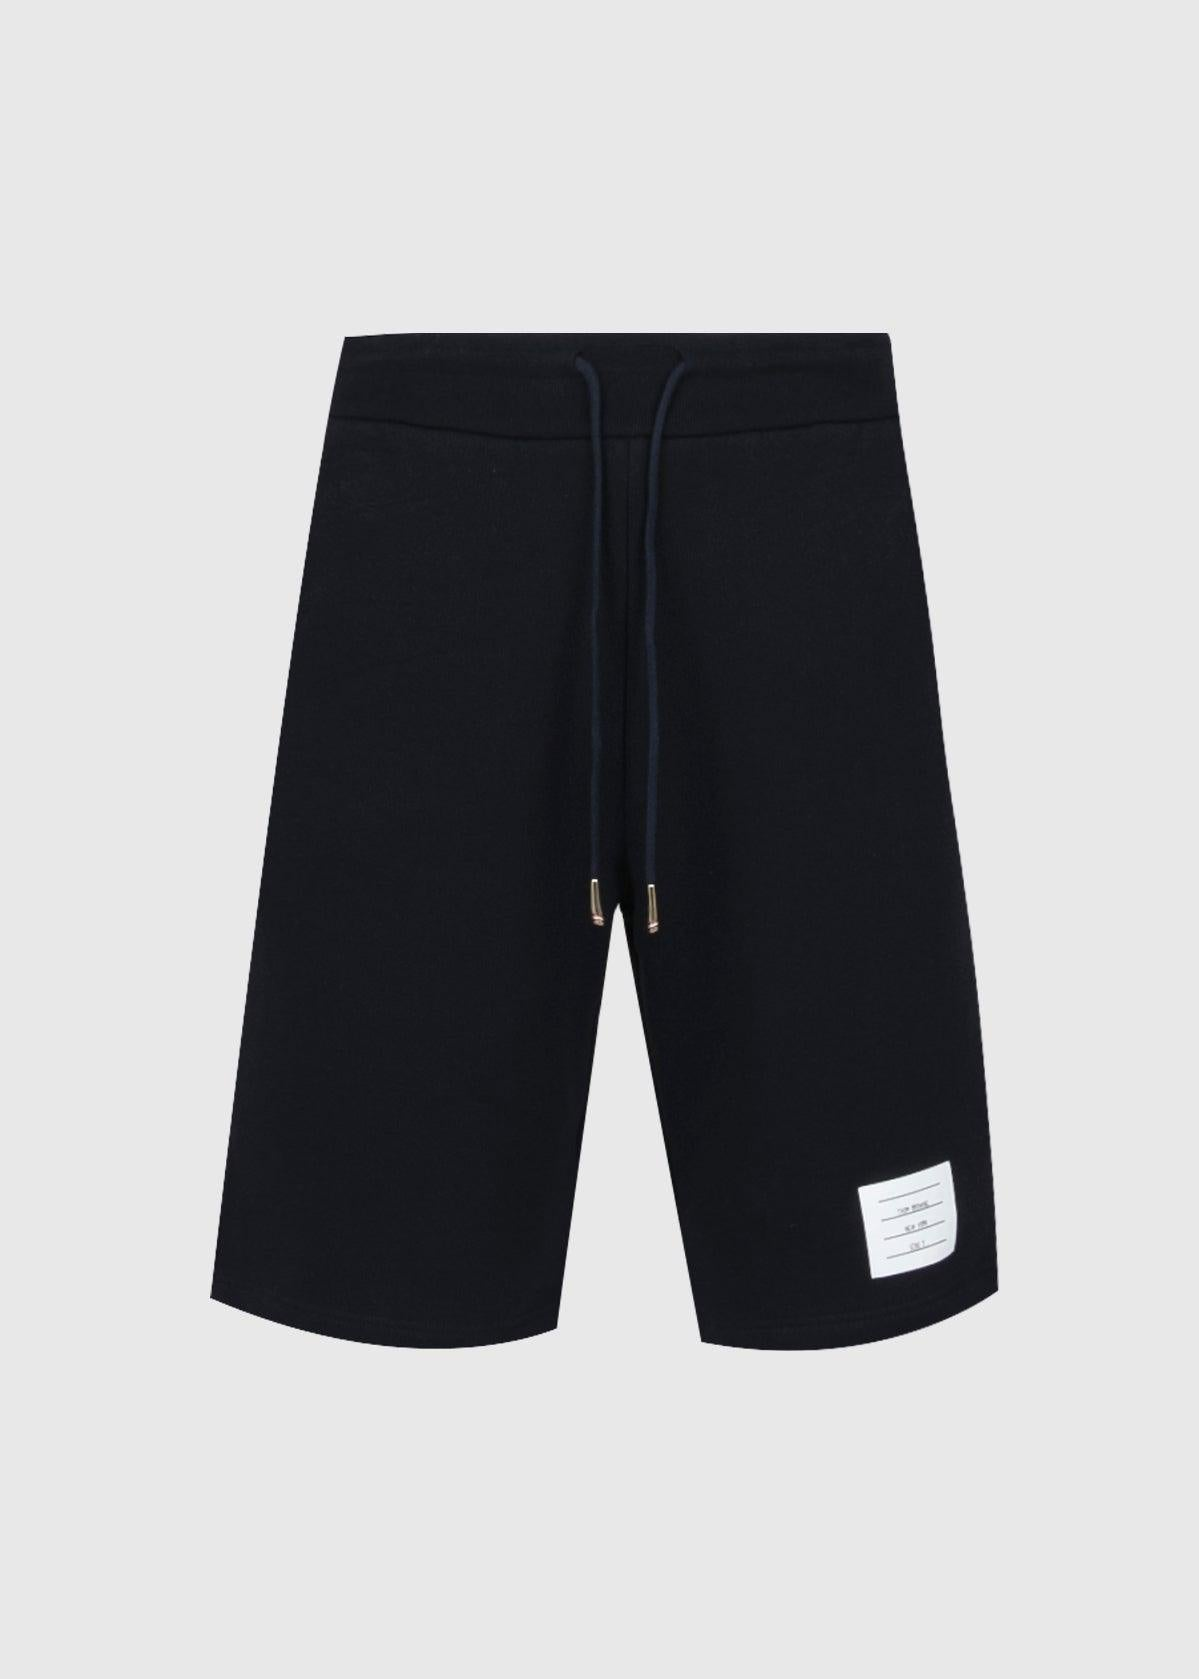 THOM BROWNE: SWEATSHORTS [NAVY]